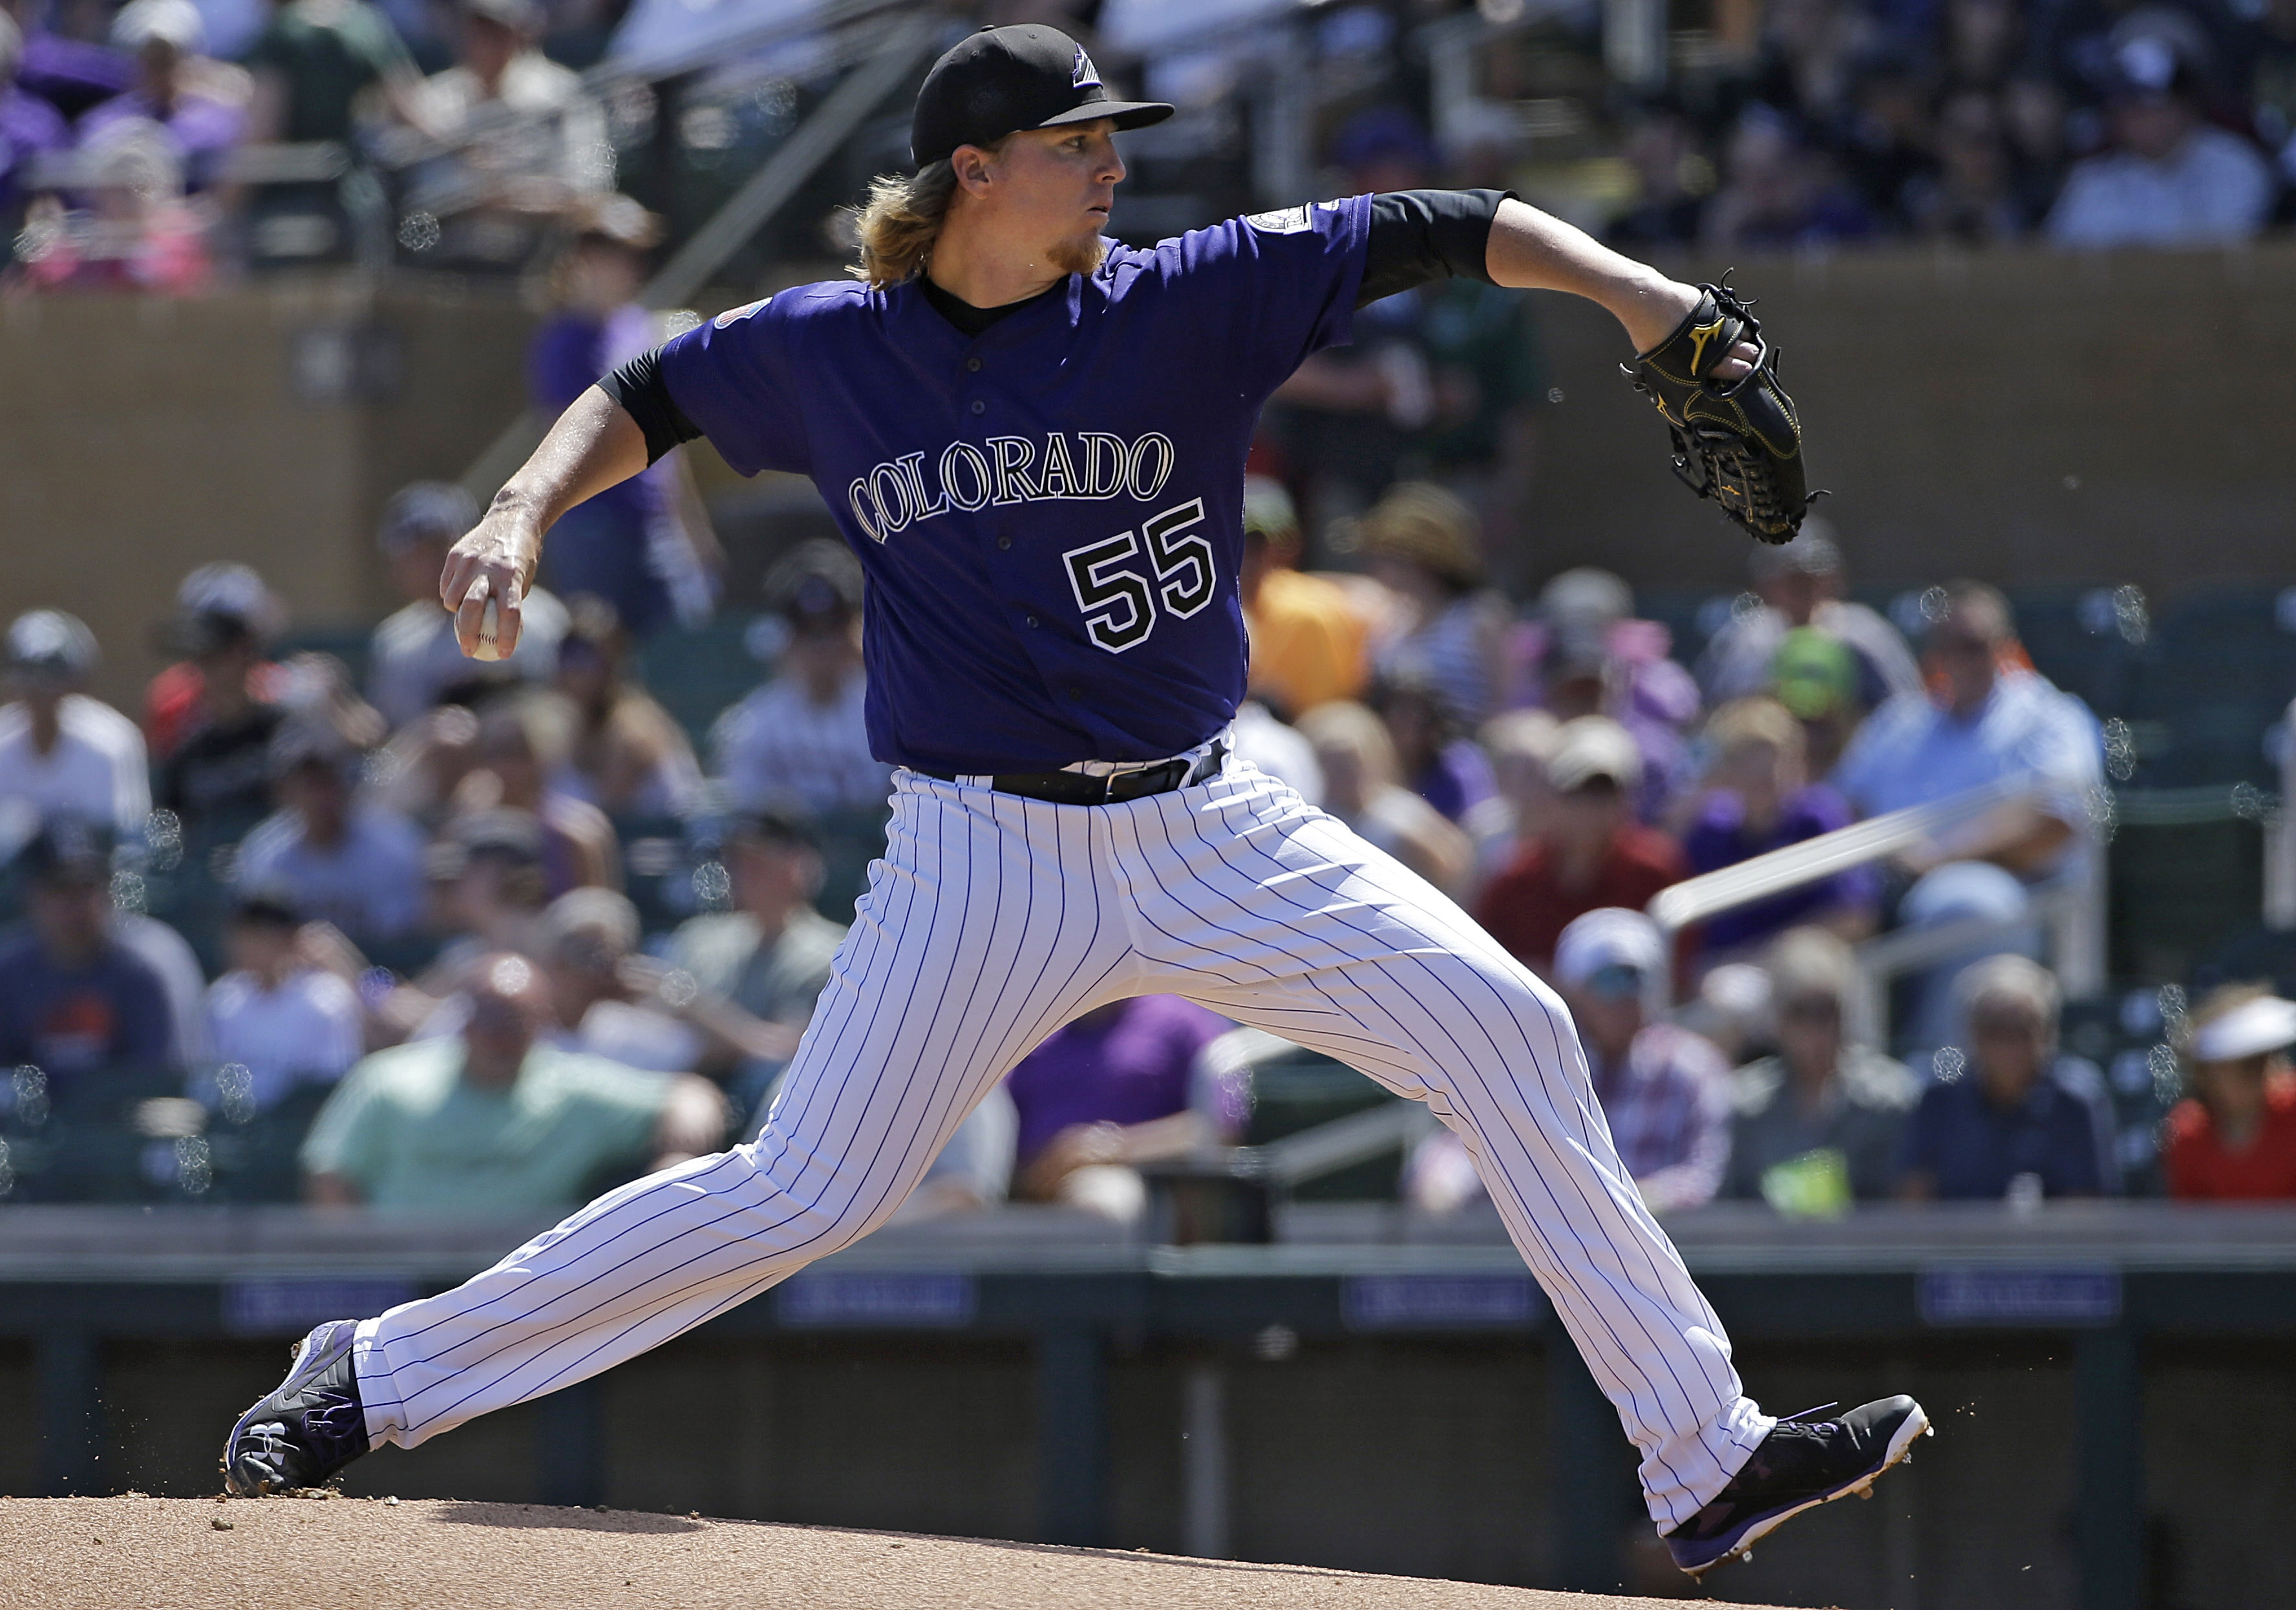 Colorado Rockies starting pitcher Jon Gray throws during the first inning of a spring training baseball game against the Milwaukee Brewers in Scottsdale, Ariz., Tuesday, March 22, 2016. (AP Photo/Jeff Chiu)